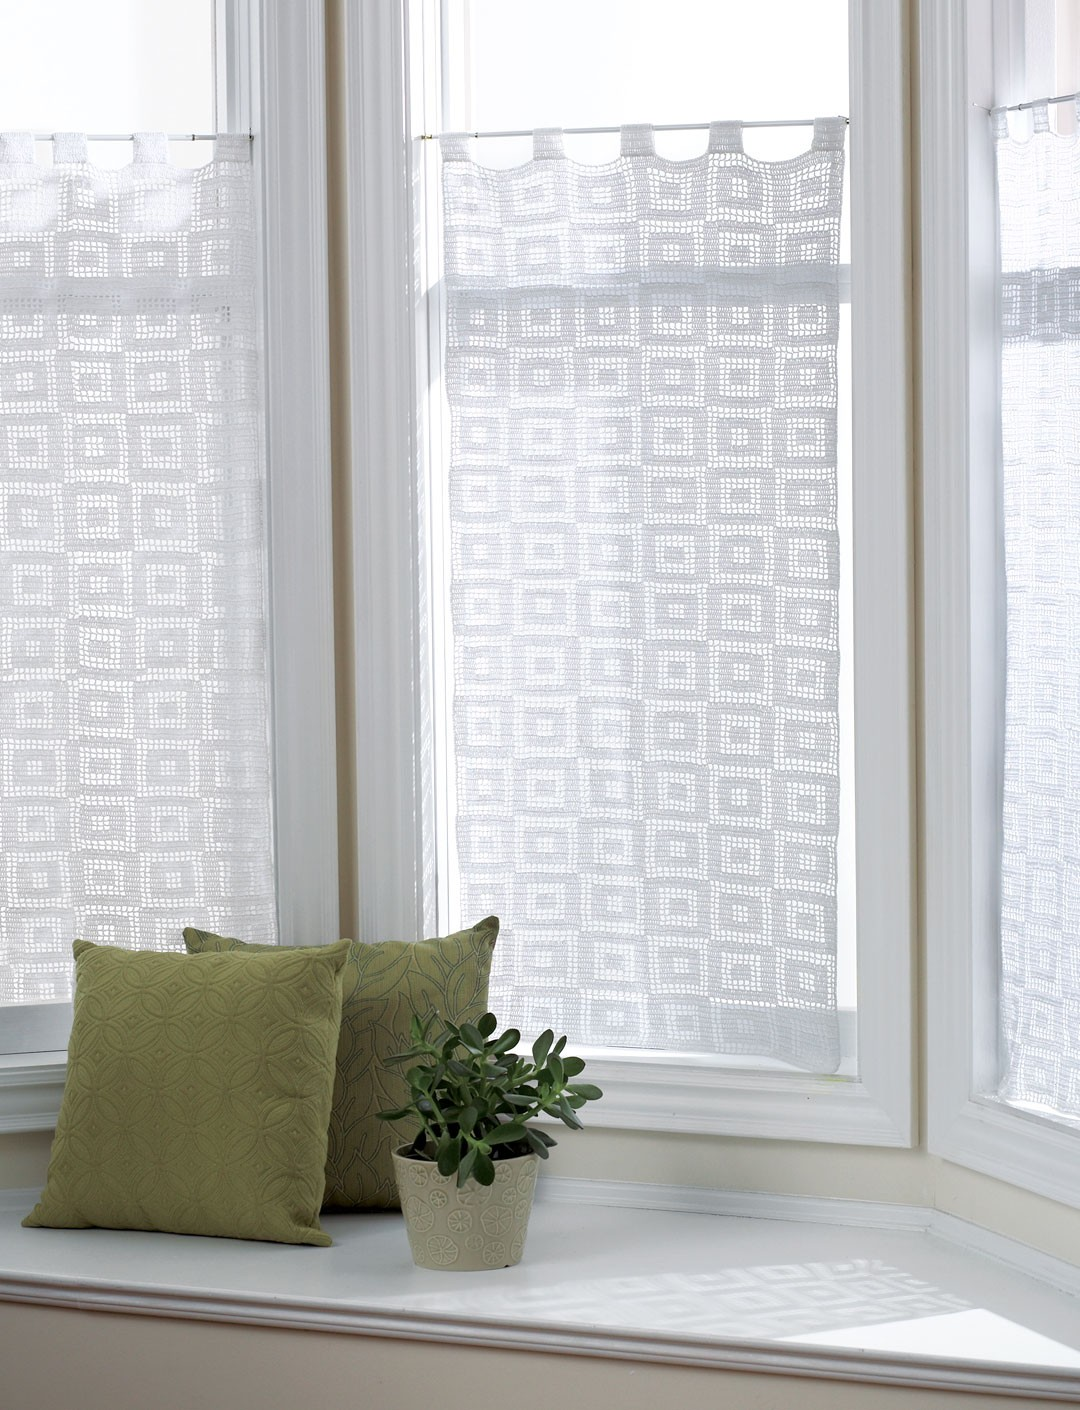 Blocks-In-Blocks Curtains